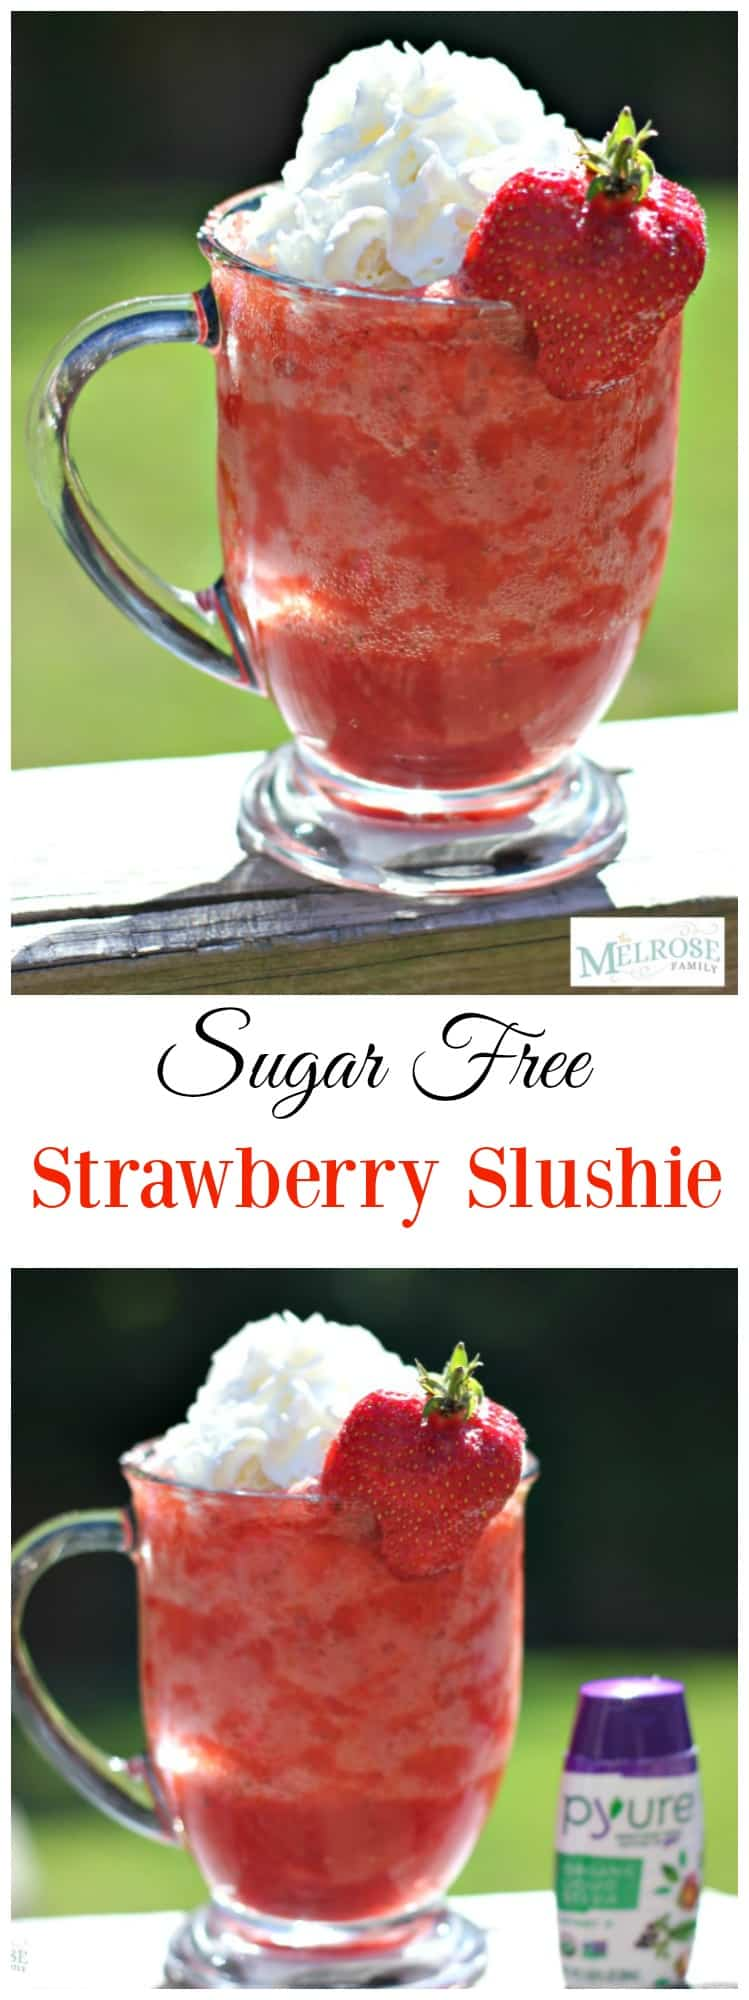 Sugar Free Strawberry Slushie #ad